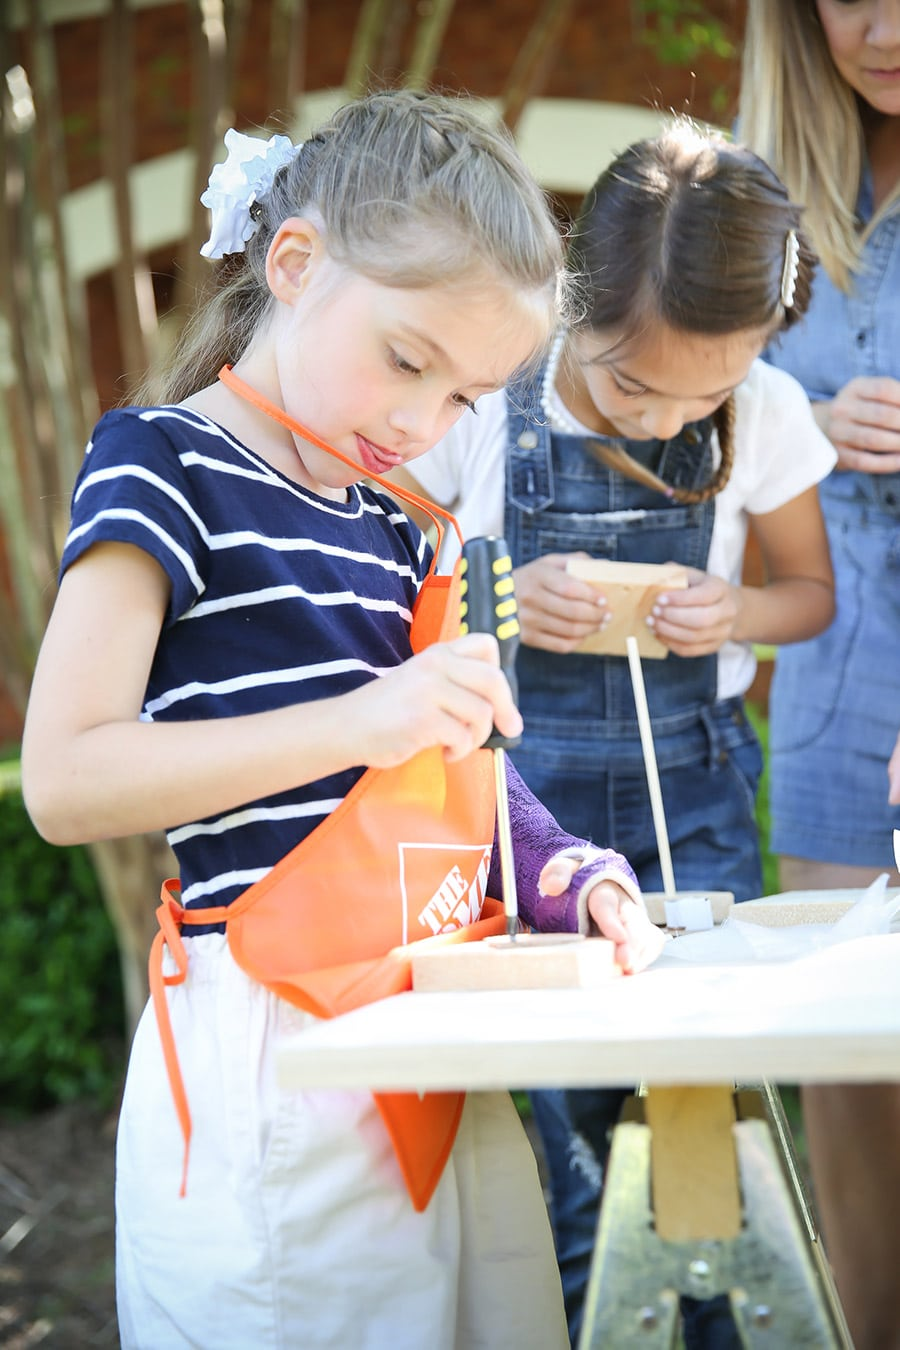 Cute kids construction themed party where the kids build something! How fun!